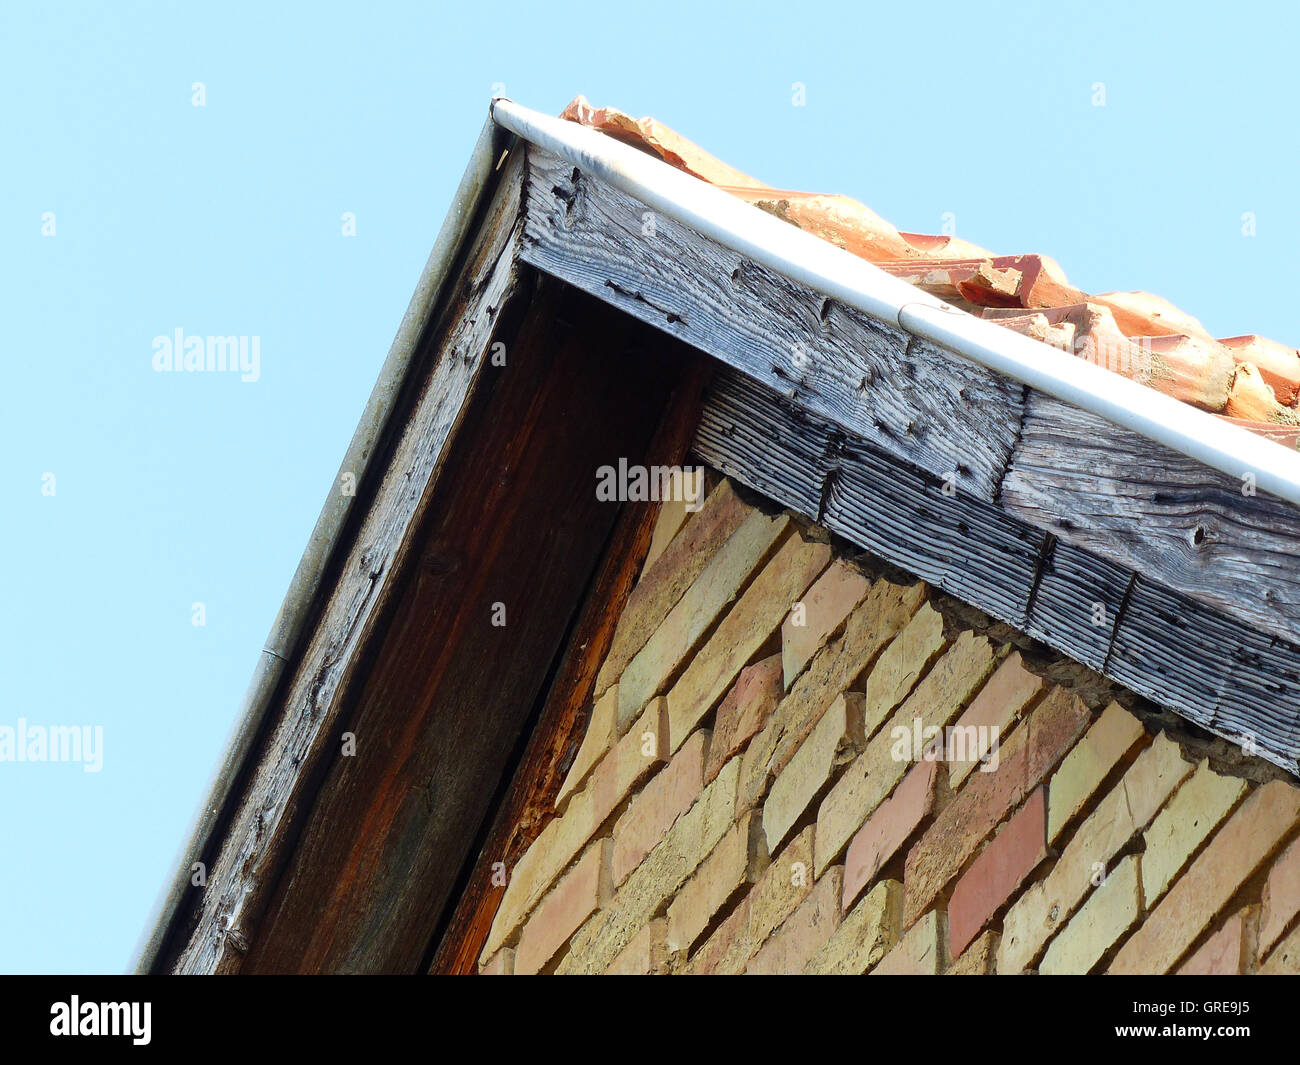 Gable Of A House - Stock Image